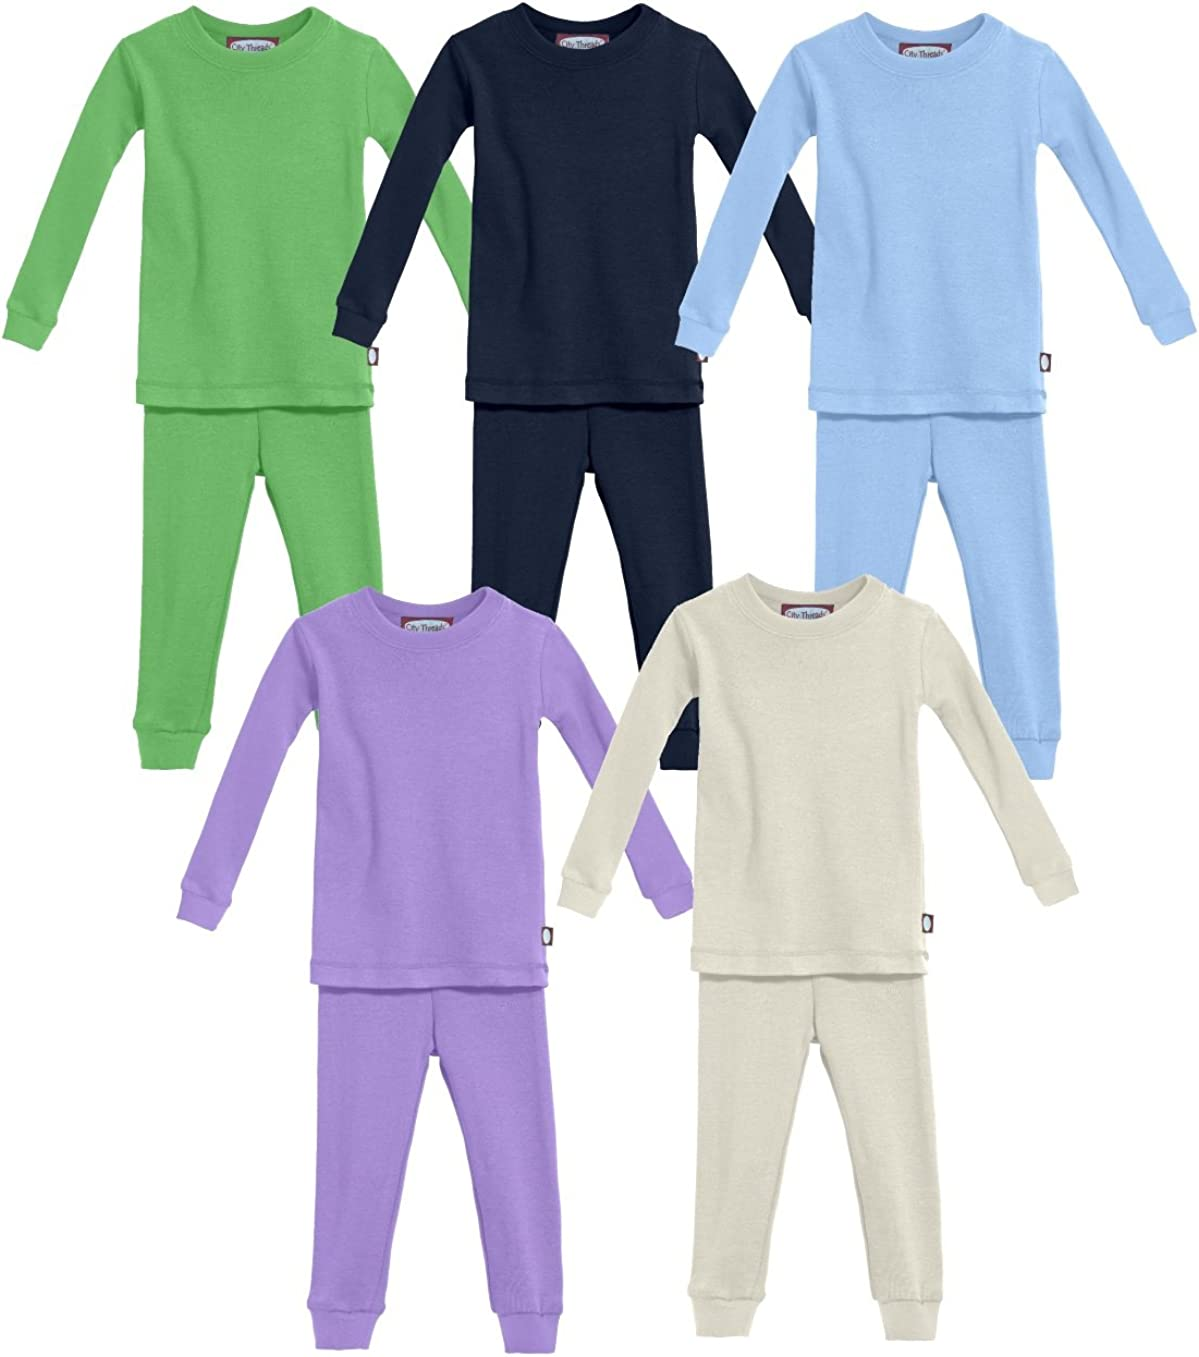 City Threads Boys and Girls Pajama Set PJs Organic Cotton Made in USA